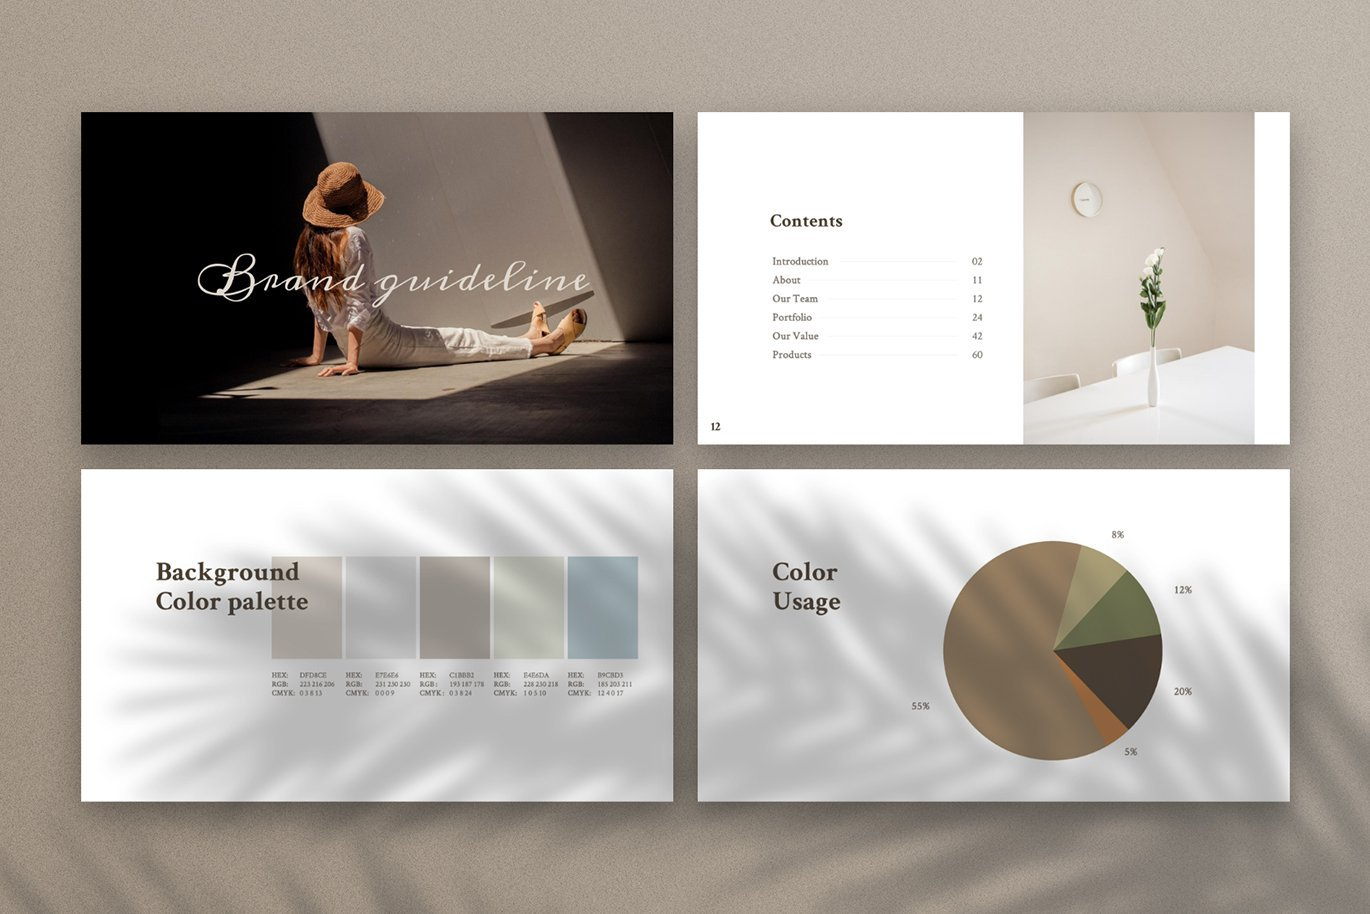 There are delicate and beautiful slides with infographics and quality photos.